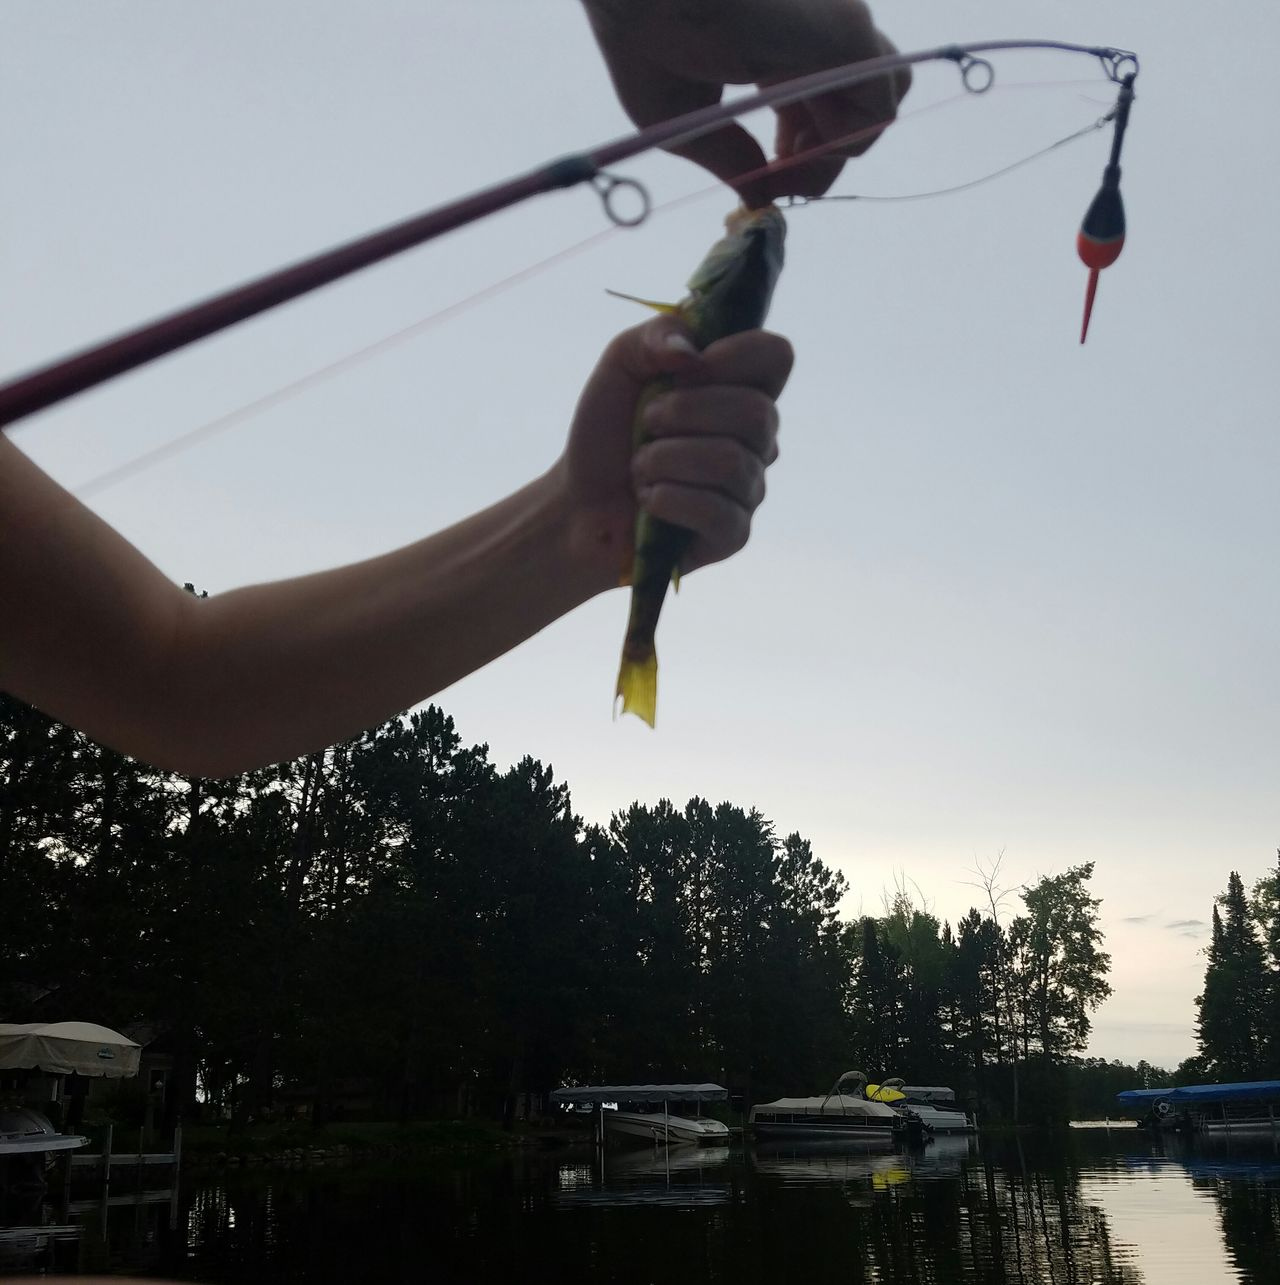 Crosslake, Minnesota Fishing Here Fishy Fishy Perch Rod And Reel Slimy Hook Line And Sinker